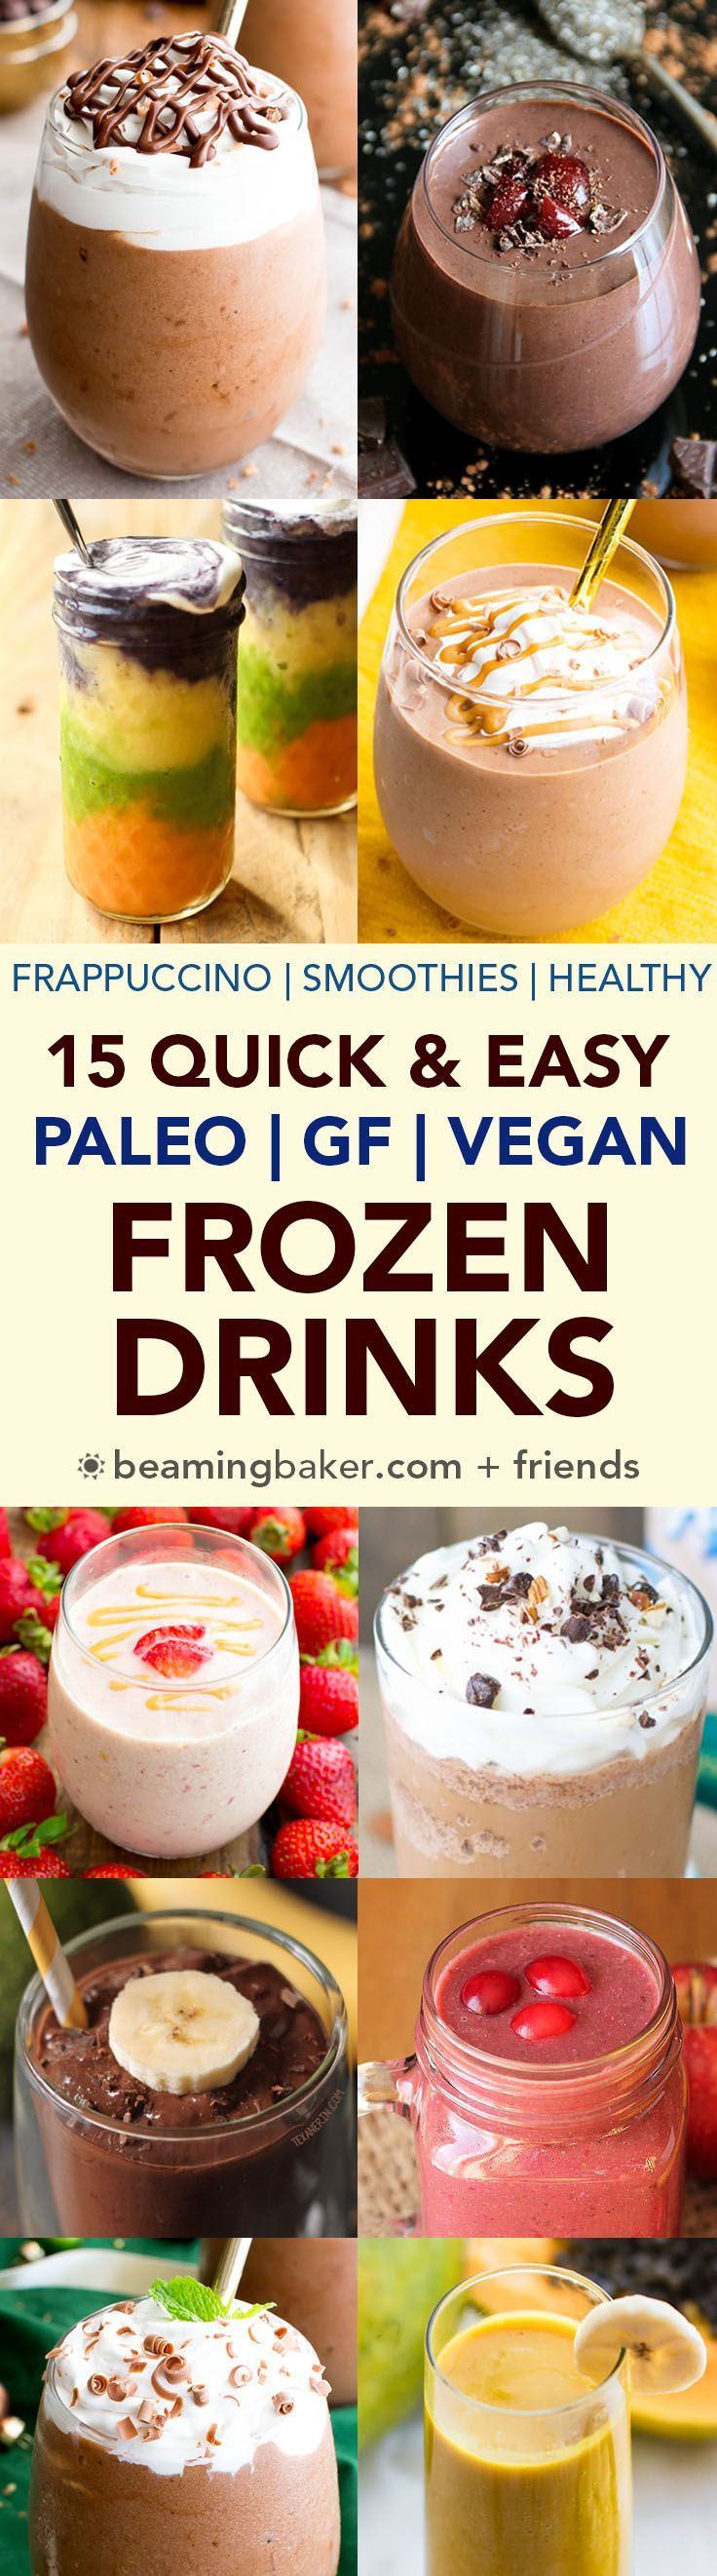 ~~15 Easy Vegan Frozen Drinks |  I love love, and wait for it—LOVE—frozen drinks. Frappuccinos, smoothies, milkshakes, and more… I'll take them all, any time of the year. The more the merrier. Gluten Free, Dairy-Free, Vegan, and Paleo | Beaming Baker~~